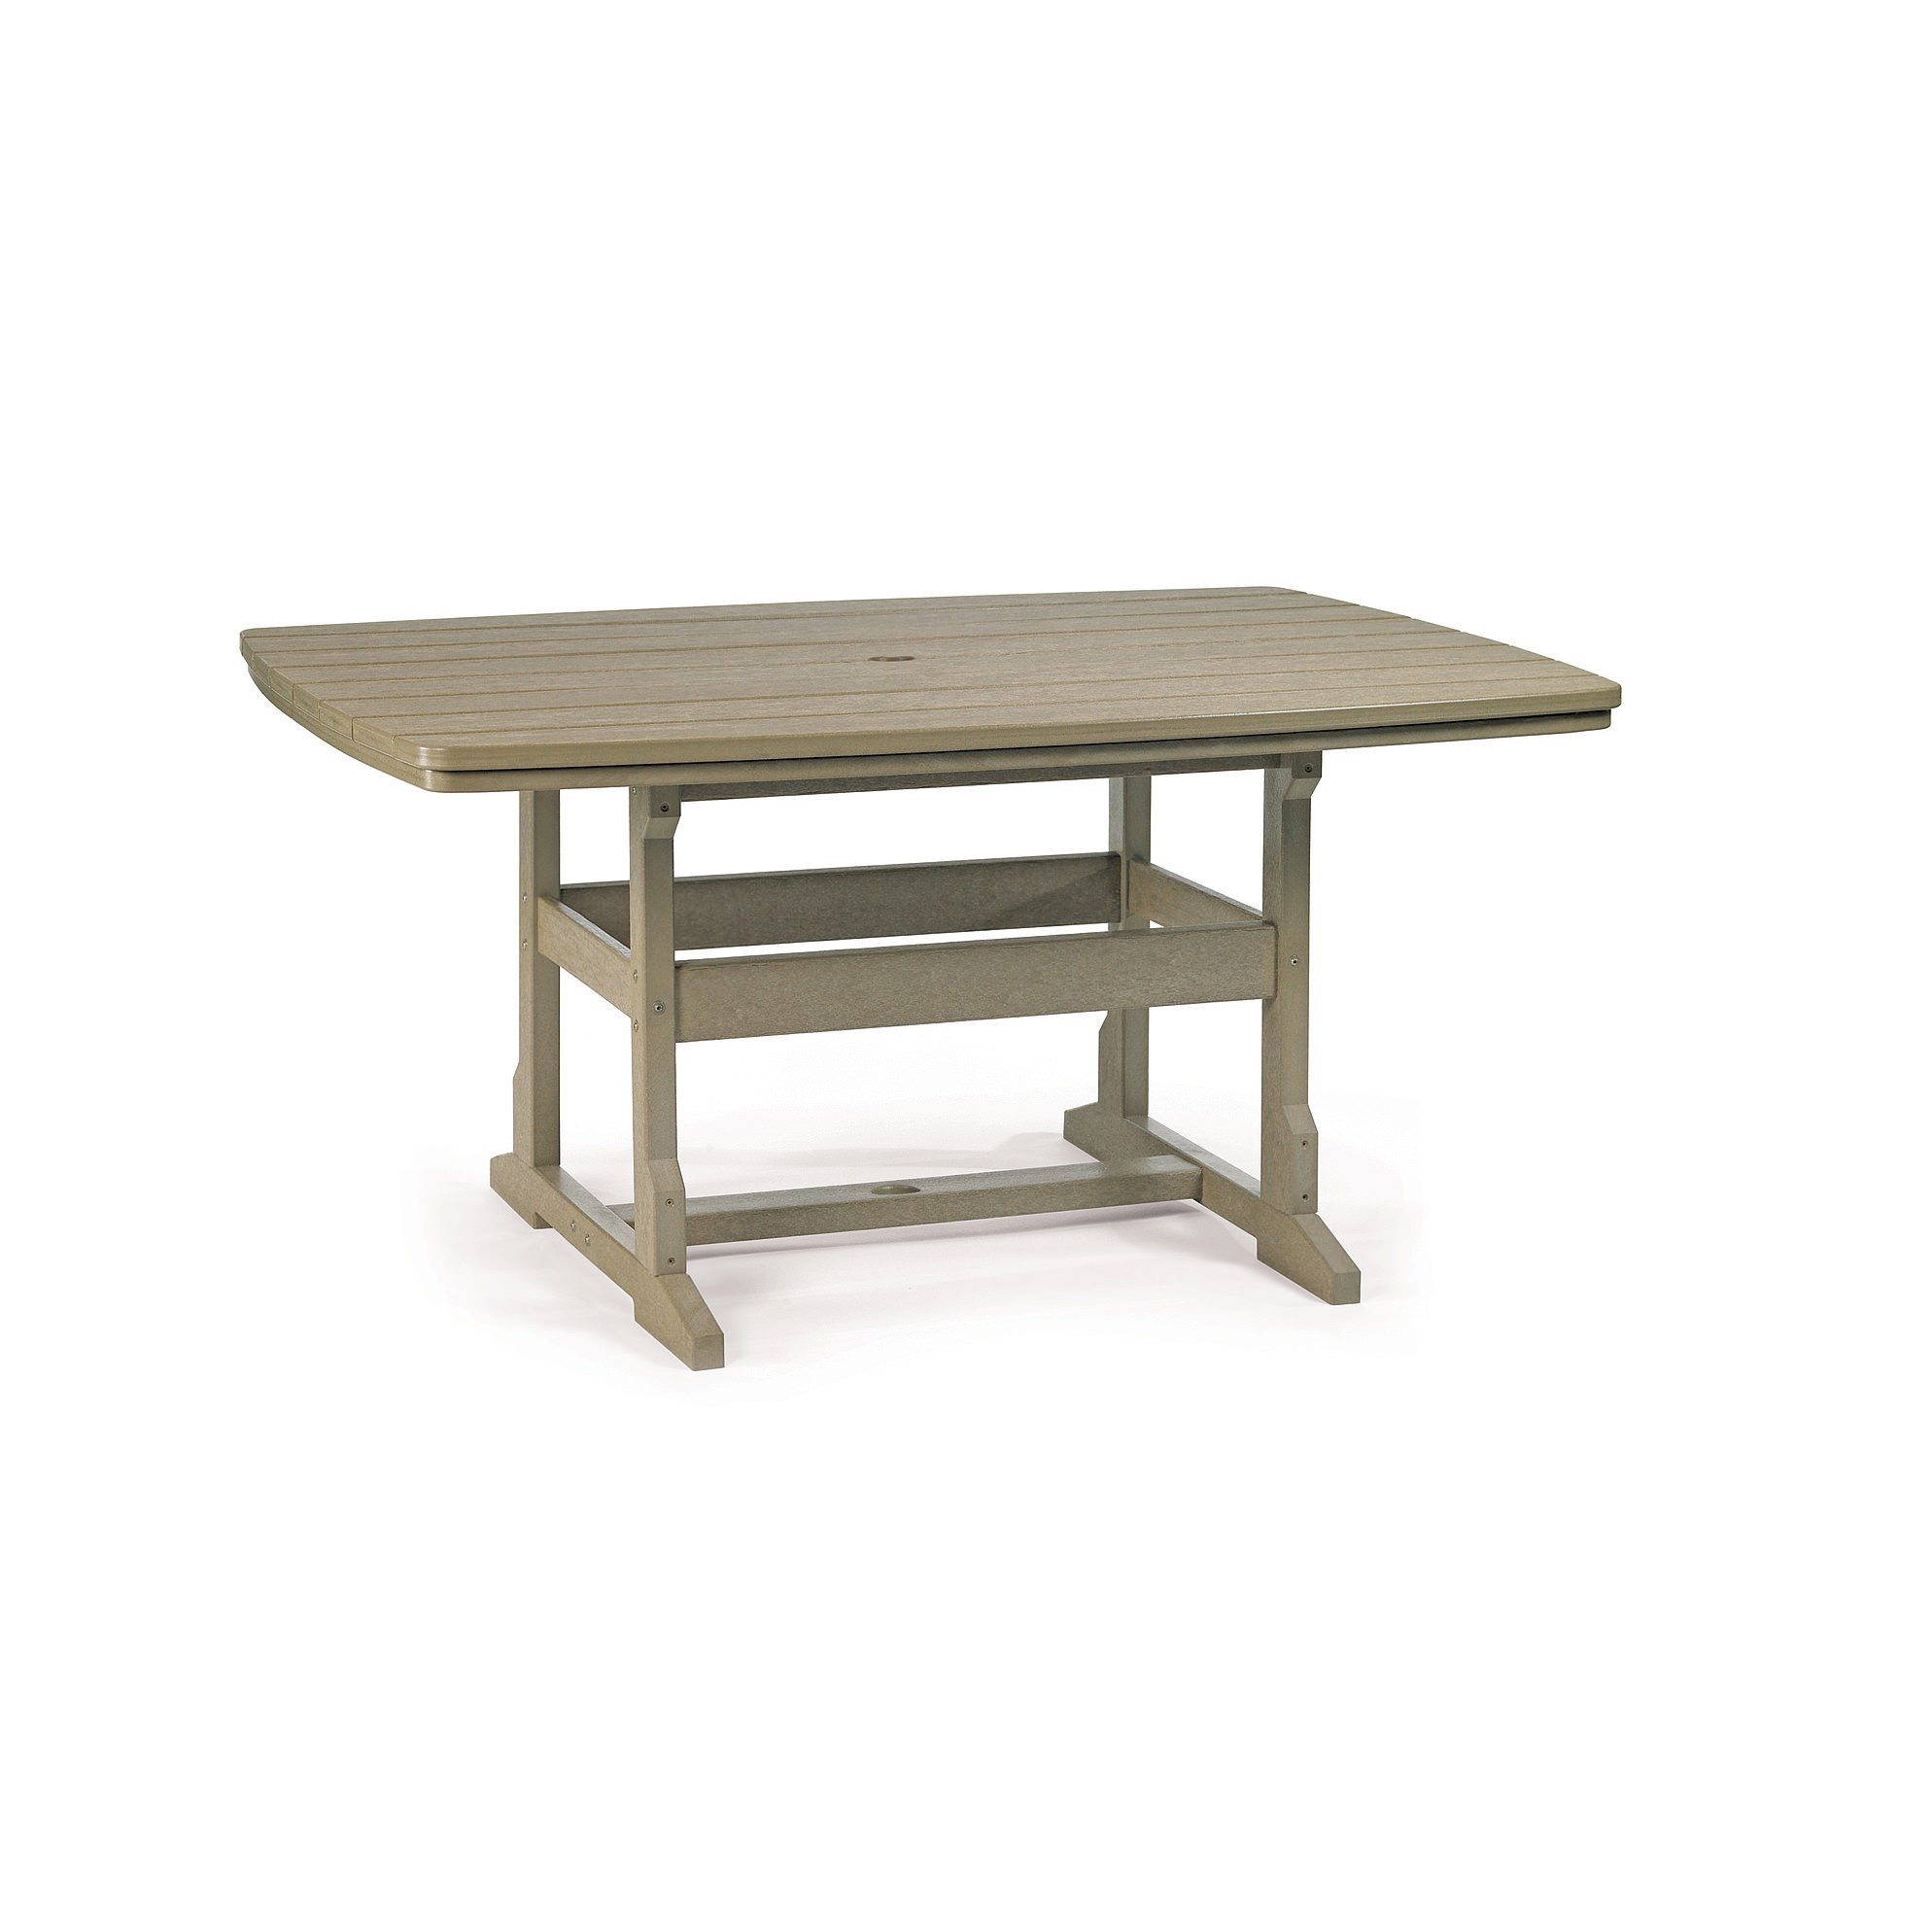 Breezesta 42 X 60 Inch Rectangular Dining Table